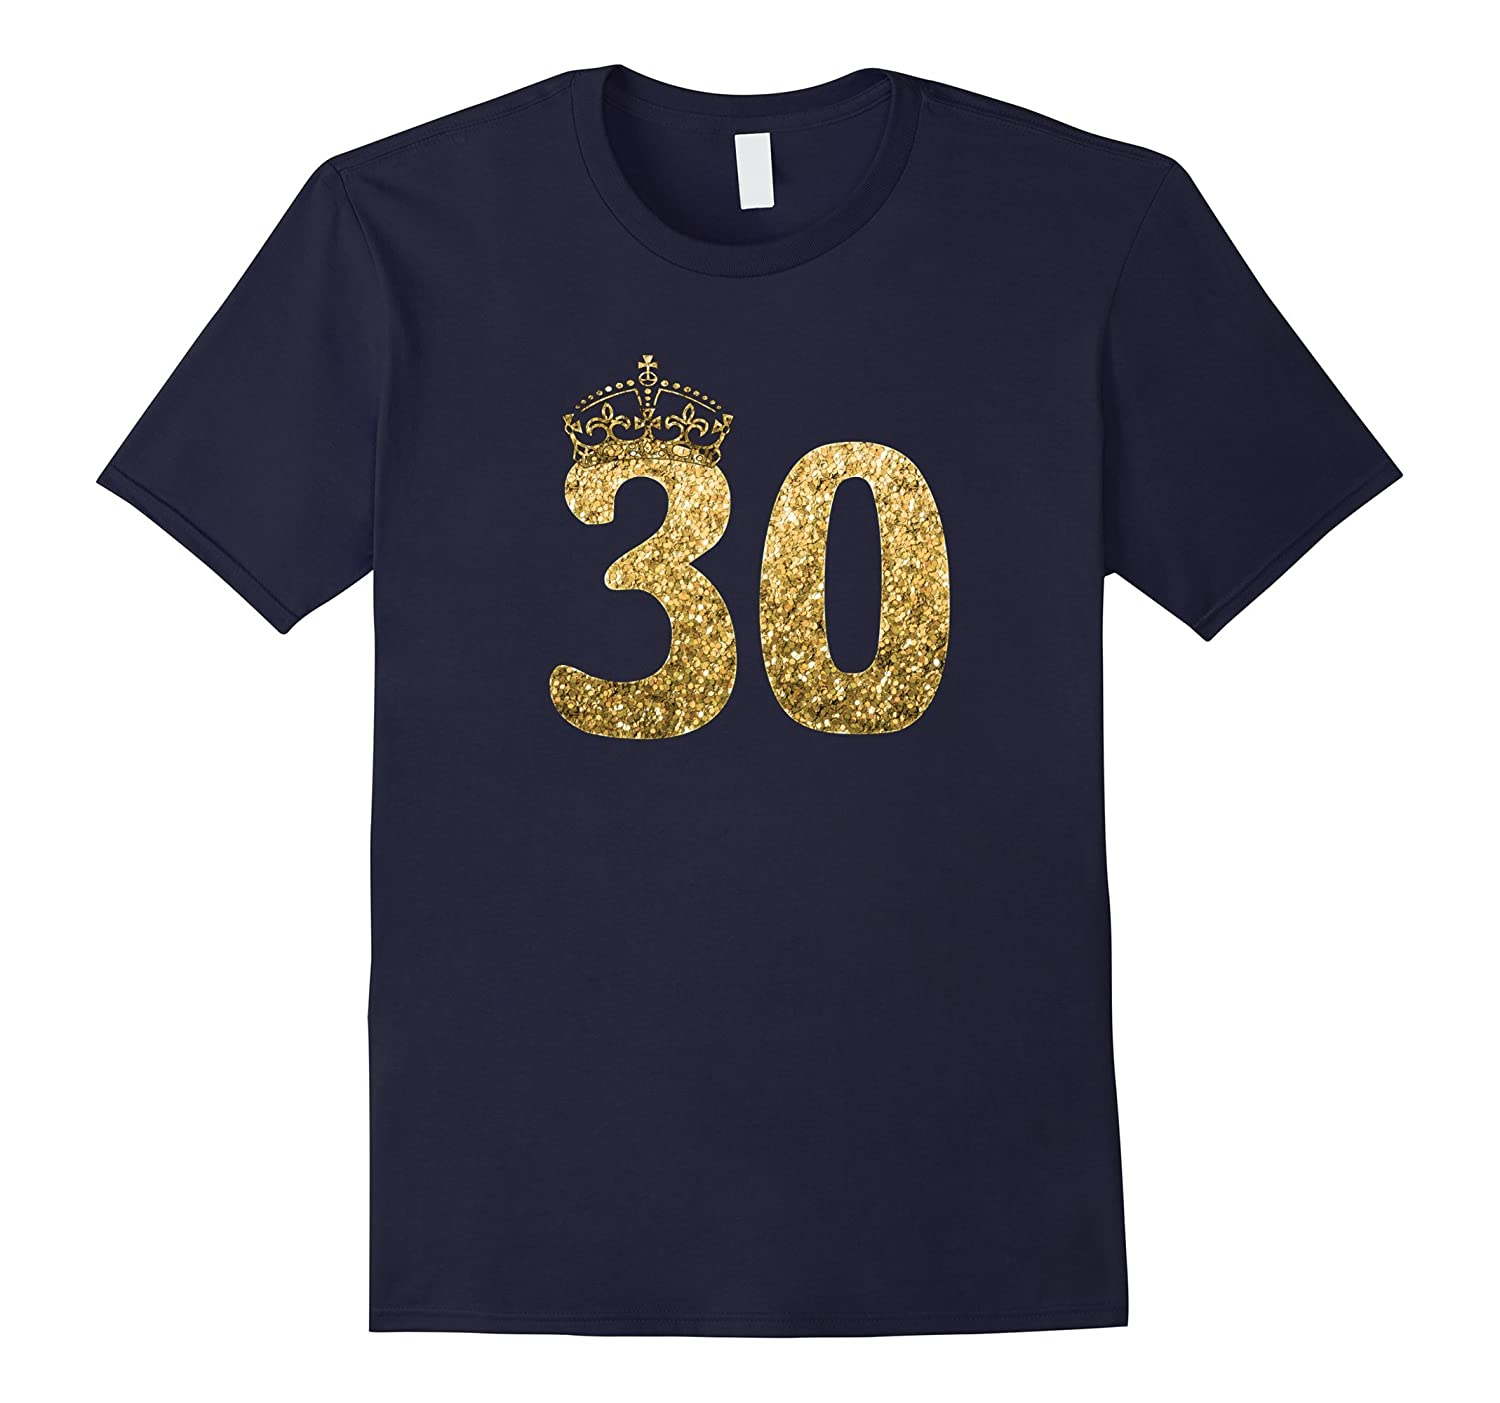 30th Birthday Shirt Birthday Shirts for Women-TH